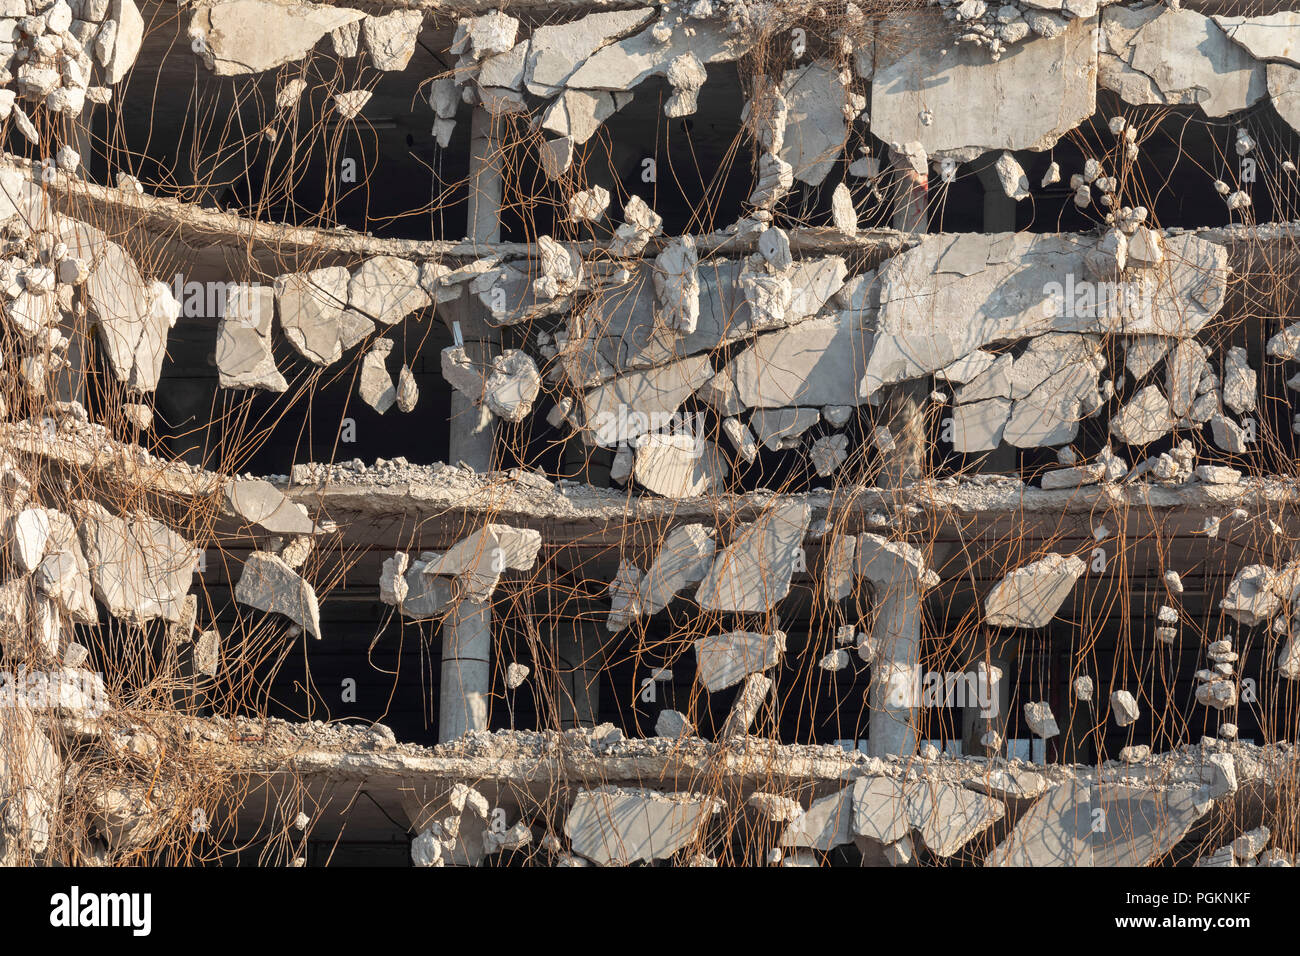 Rock Island, Illinois - Demolition of the Rock Island Plow Company building. Subsequently used by J.I. Case, the building had been vacant since 1988. - Stock Image